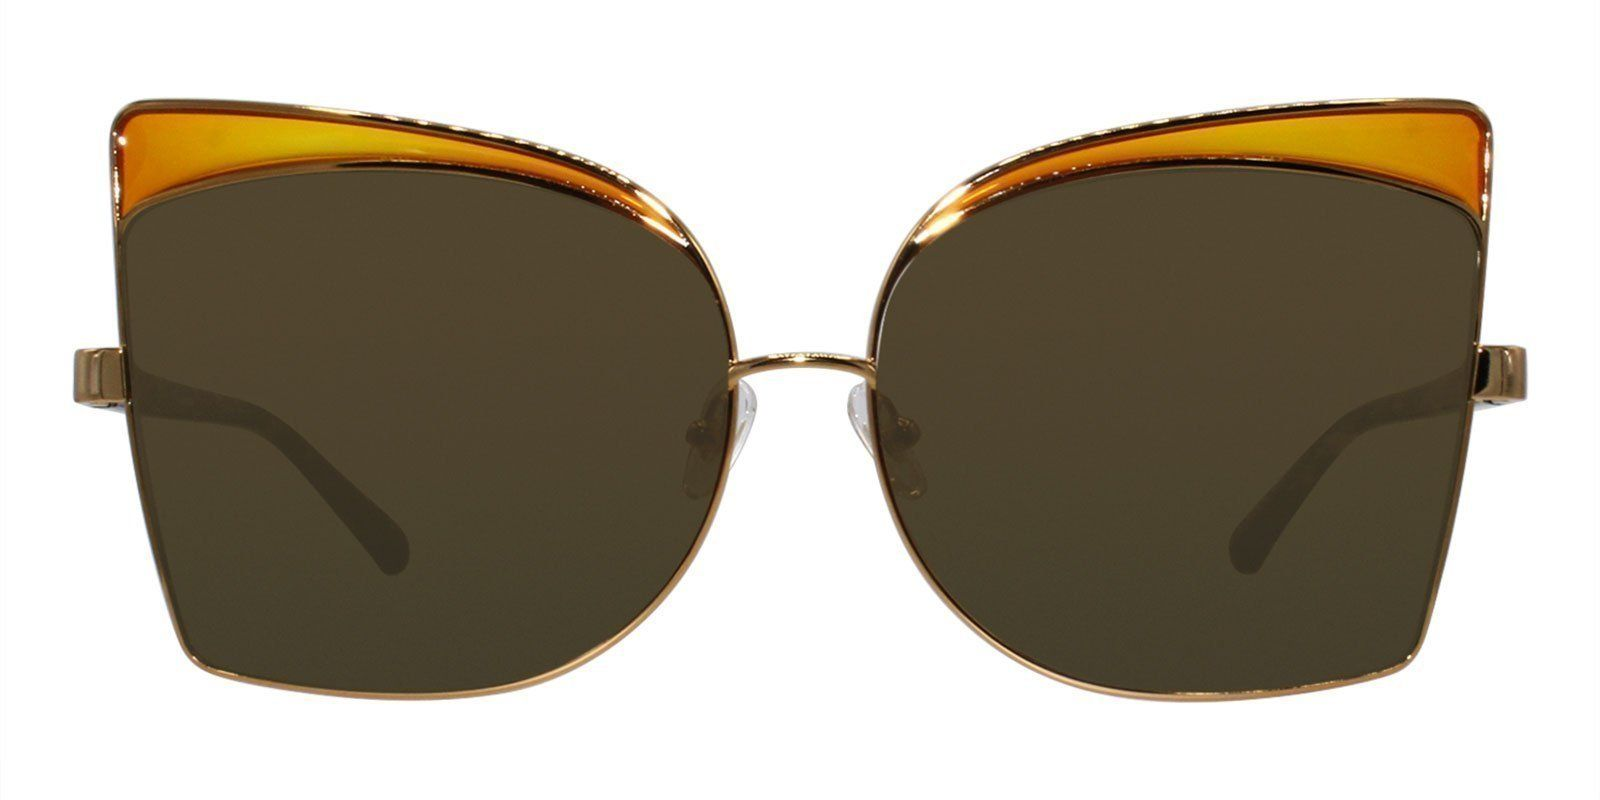 dc22cc4f21b Linda Farrow - N21 Gold - Brown sunglasses